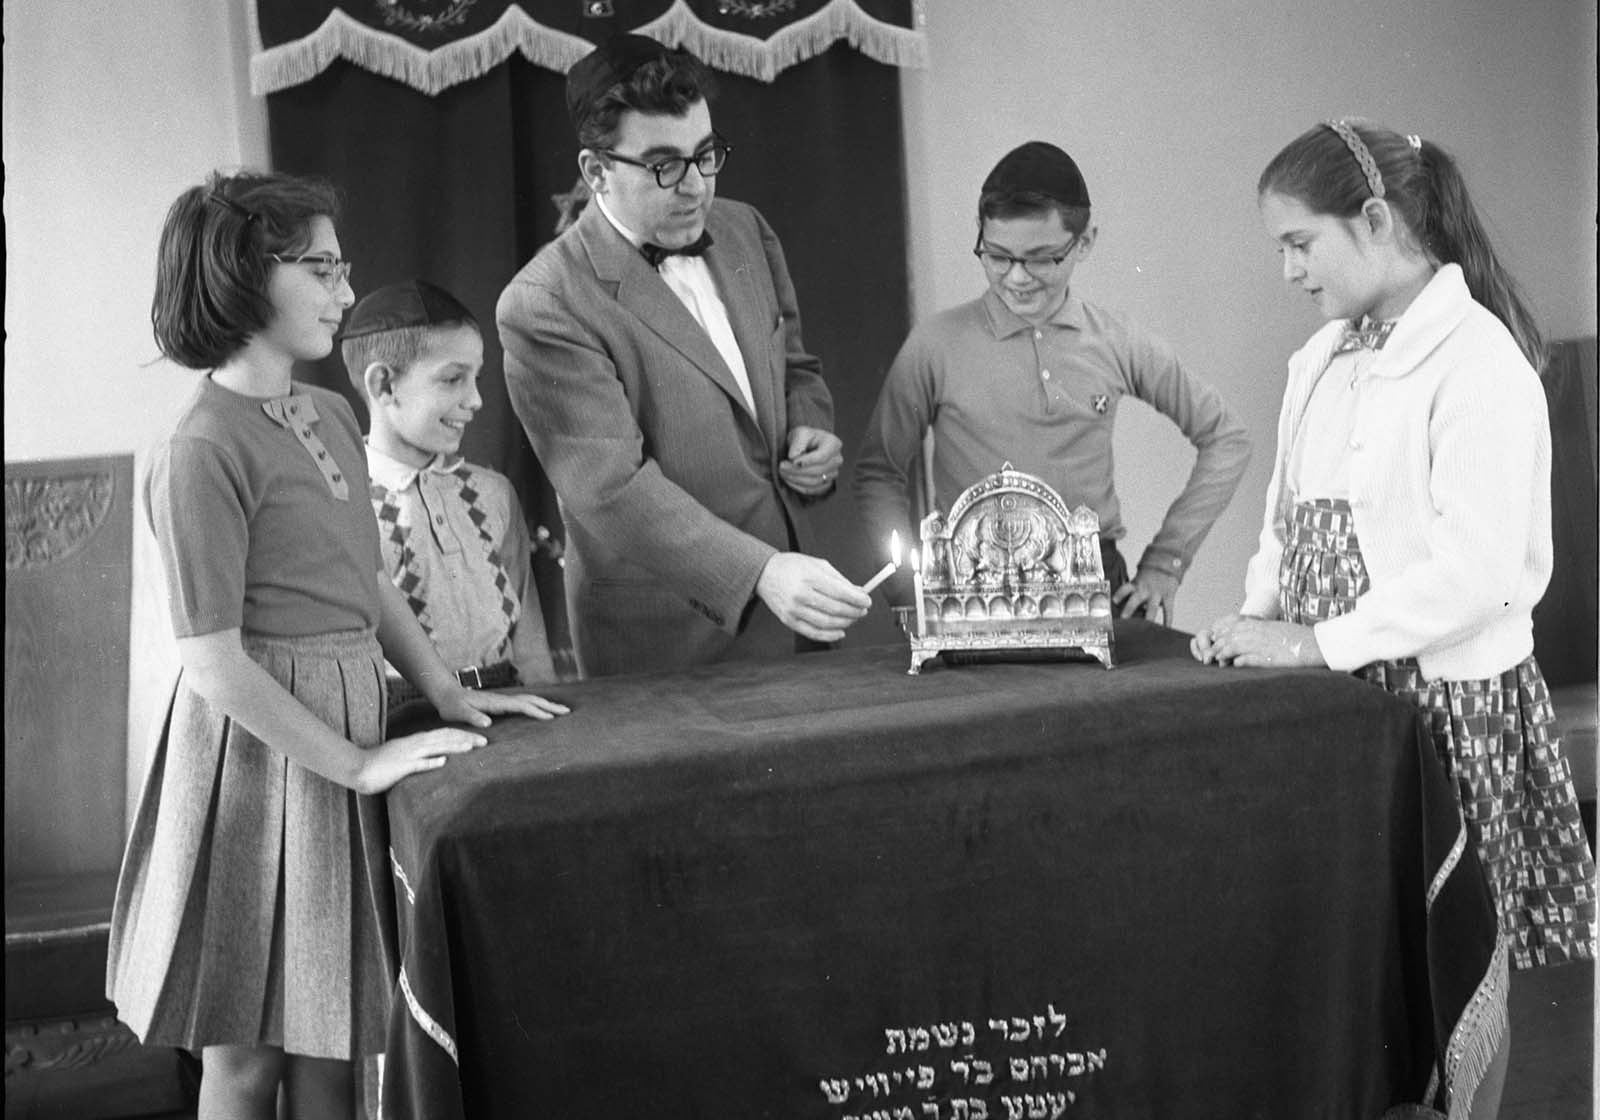 """Hanukkah, despite being a relatively minor Jewish holiday (indeed it is a festival), has, in the broader culture, become """"Jewish Christmas,"""" even though religiously it's not nearly as important as Christmas. Why?"""